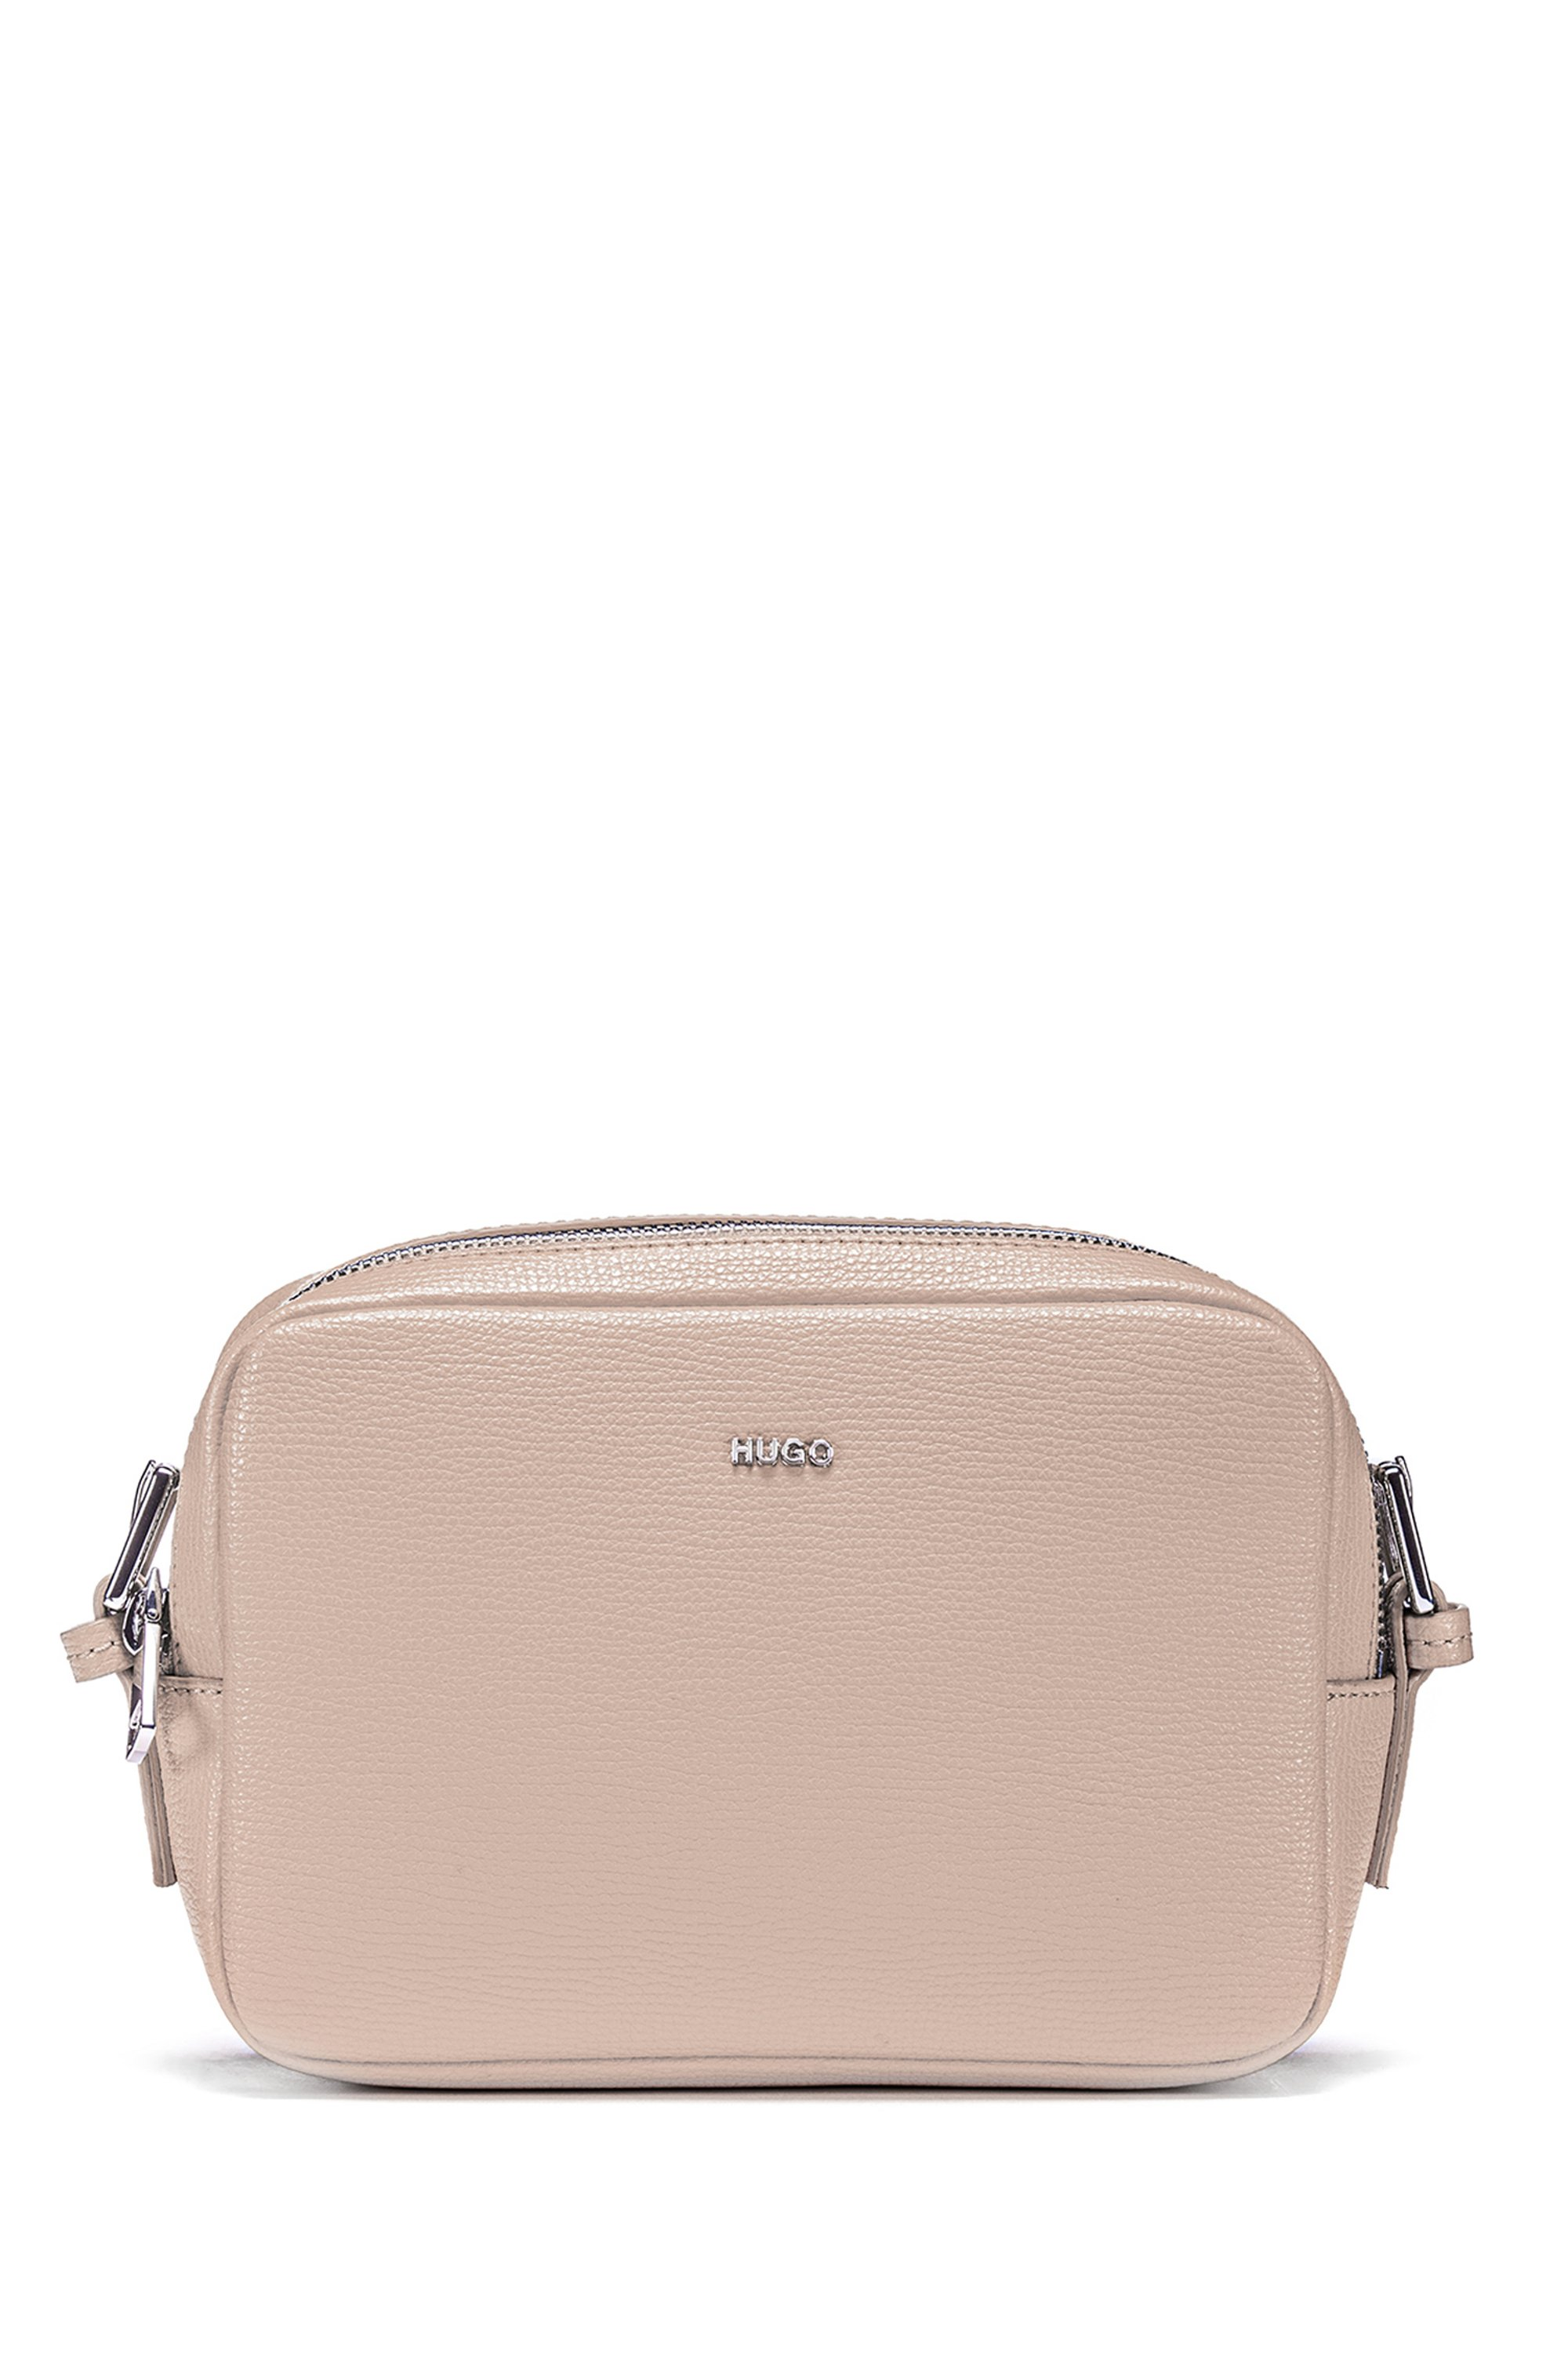 Cross-body grained-leather bag with oval hardware trims, Light Beige